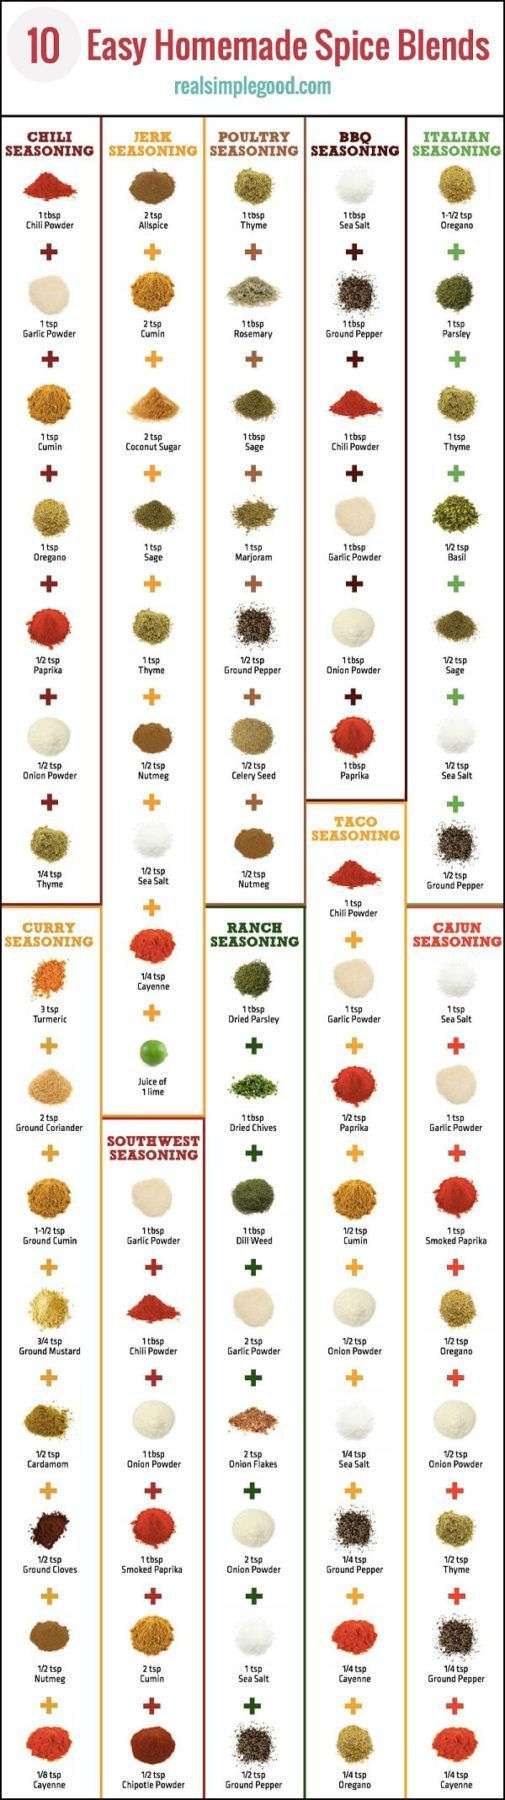 Try these 10 clean and easy homemade spice blends. Make these at home with your own fresh herbs and spices. Includes recipes for DIY taco seasoning , ranch seasoning, Italian seasoning, chili seasoning, poultry seasoning, BBQ seasoning, jerk seasoning, Cajun seasoning, curry seasoning and southwest seasoning. Paleo, Gluten-Free, Sugar-Free, Clean and Easy. | realsimplegood.com